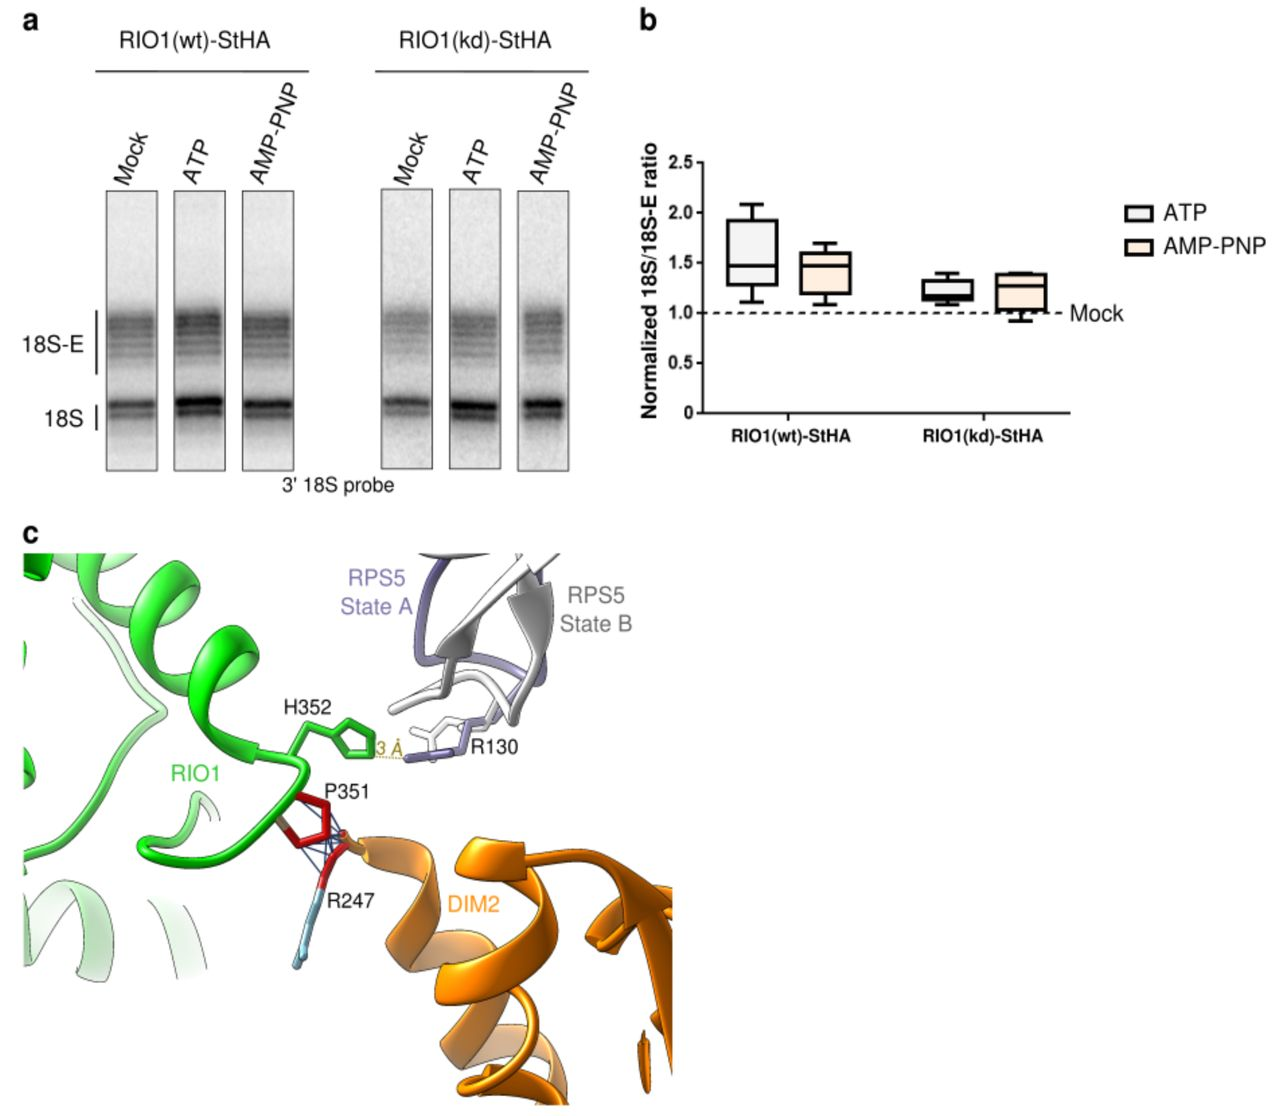 """In vitro cleavage of the 18S-E pre-rRNA within pre-40S particles is stimulated by ATP addition. HEK cell lines expressing tagged versions of wild-type RIO1 (RIO1(wt)) or of the catalytically-inactive RIO1 (kd) were treated with scramble or RPS26 siRNAs for 48h to enrich particles in state A. Pre-40S particles were purified and incubated in the presence of 1 mM ATP, 1mM AMP-PNP, or without nucleotide (mock condition). a , RNAse H assays were performed on the RNAs extracted from the particles. b , The variation of cleavage efficiency with the different nucleotides is indicated by the 18S/18S-E ratio and normalized to the mock-treated sample (set to 1). The data correspond to five independent experiments. Analysis of the results with a unilateral paired Wilcoxon test (""""sample greater than mock"""") indicates p-values of 0.031 for samples RIO1(wt)-ATP, RIO1(wt)-AMP-PNP, RIO1(kd)-ATP, and 0.063 for RIO1(kd)-AMP-PNP. c , Superimposition of atomic models of State A and B reveals overlapping distances (grey lines) between atoms of Proline 351 from RIO1 (green) and of Arginine 247 from DIM2 (orange). RPS5, which seems to be repositioned upon association of RIO1 / dissociation of DIM2 from the pre-40S particle, is shown in violet (State A) or white (State B)."""